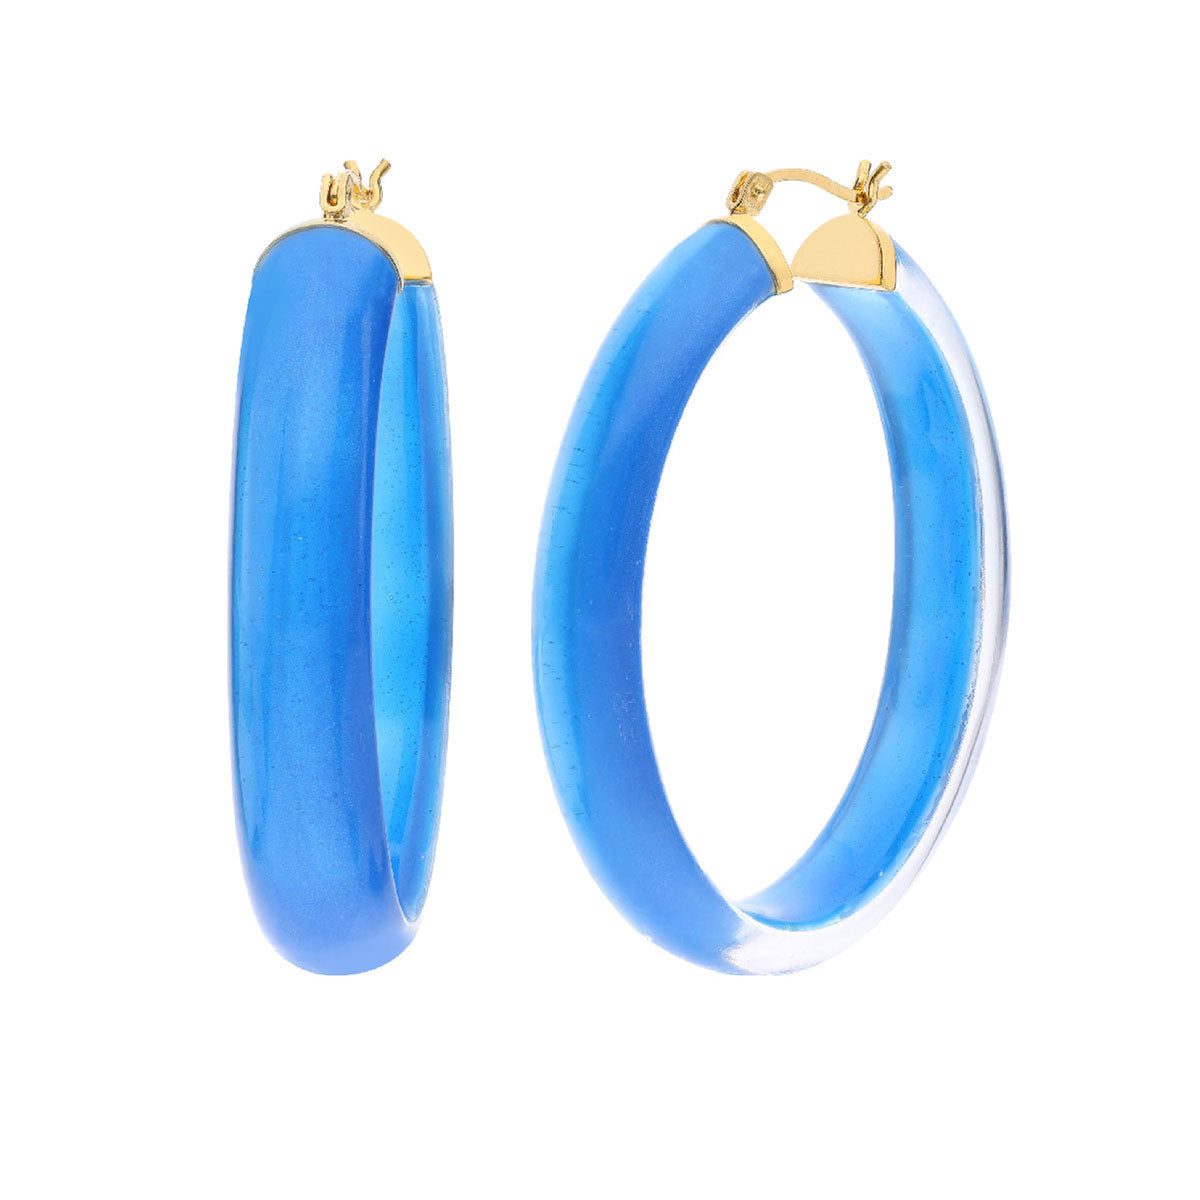 XL Illusion Oval Lucite Hoops - BLUE